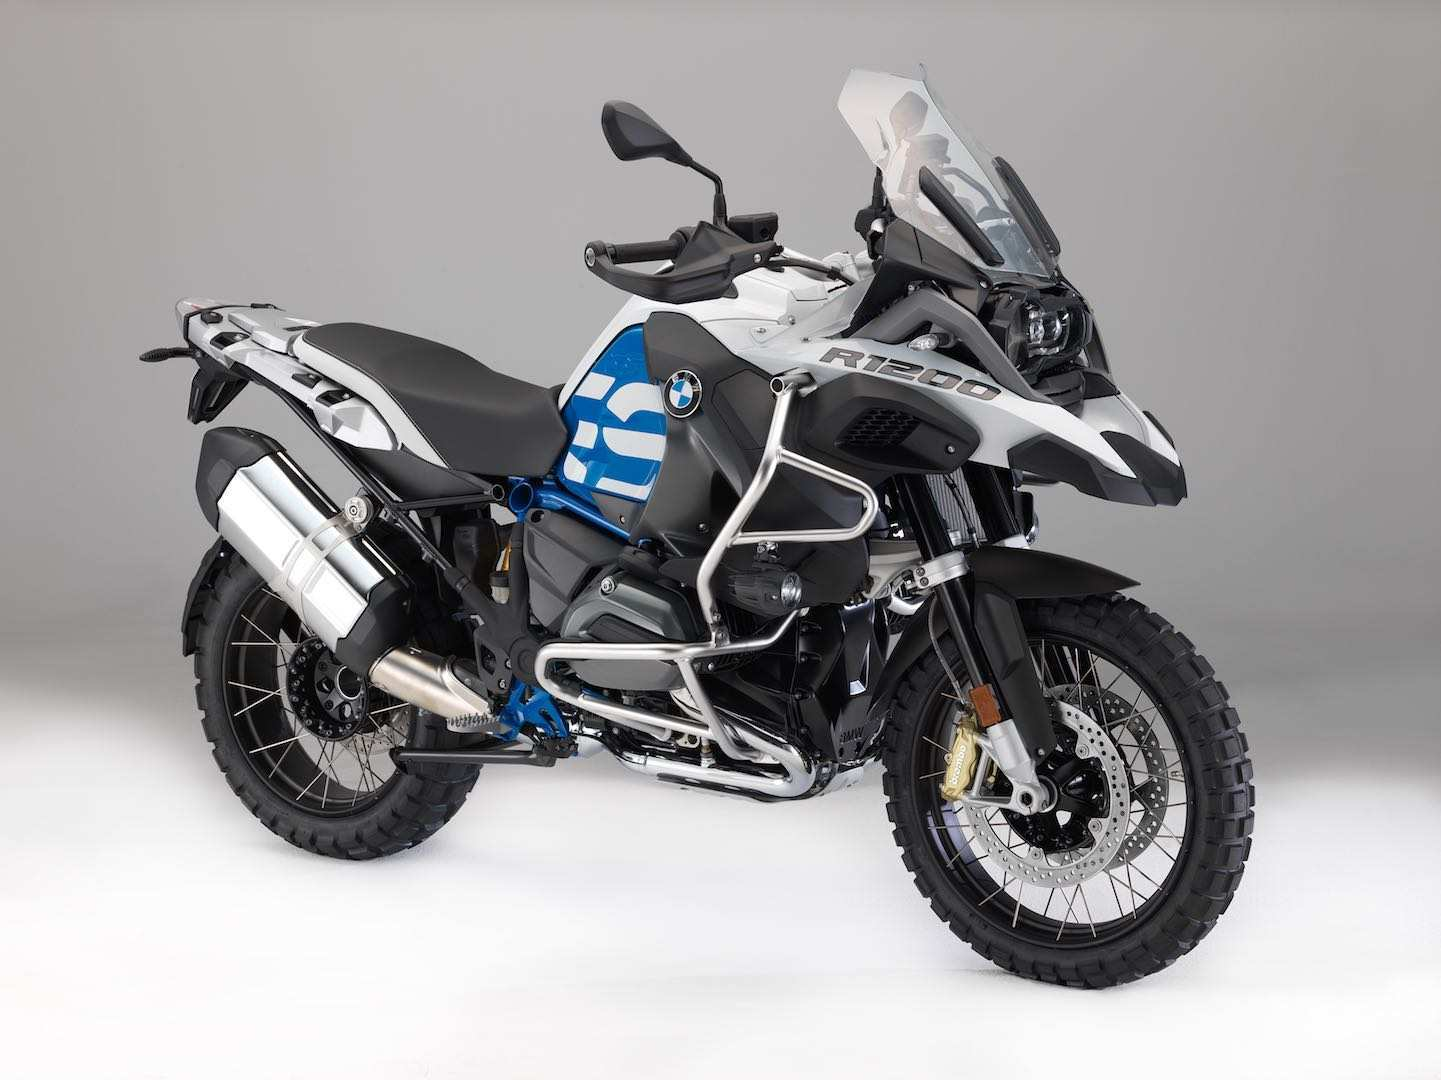 74 The Best BMW Gs Adventure 2020 Images